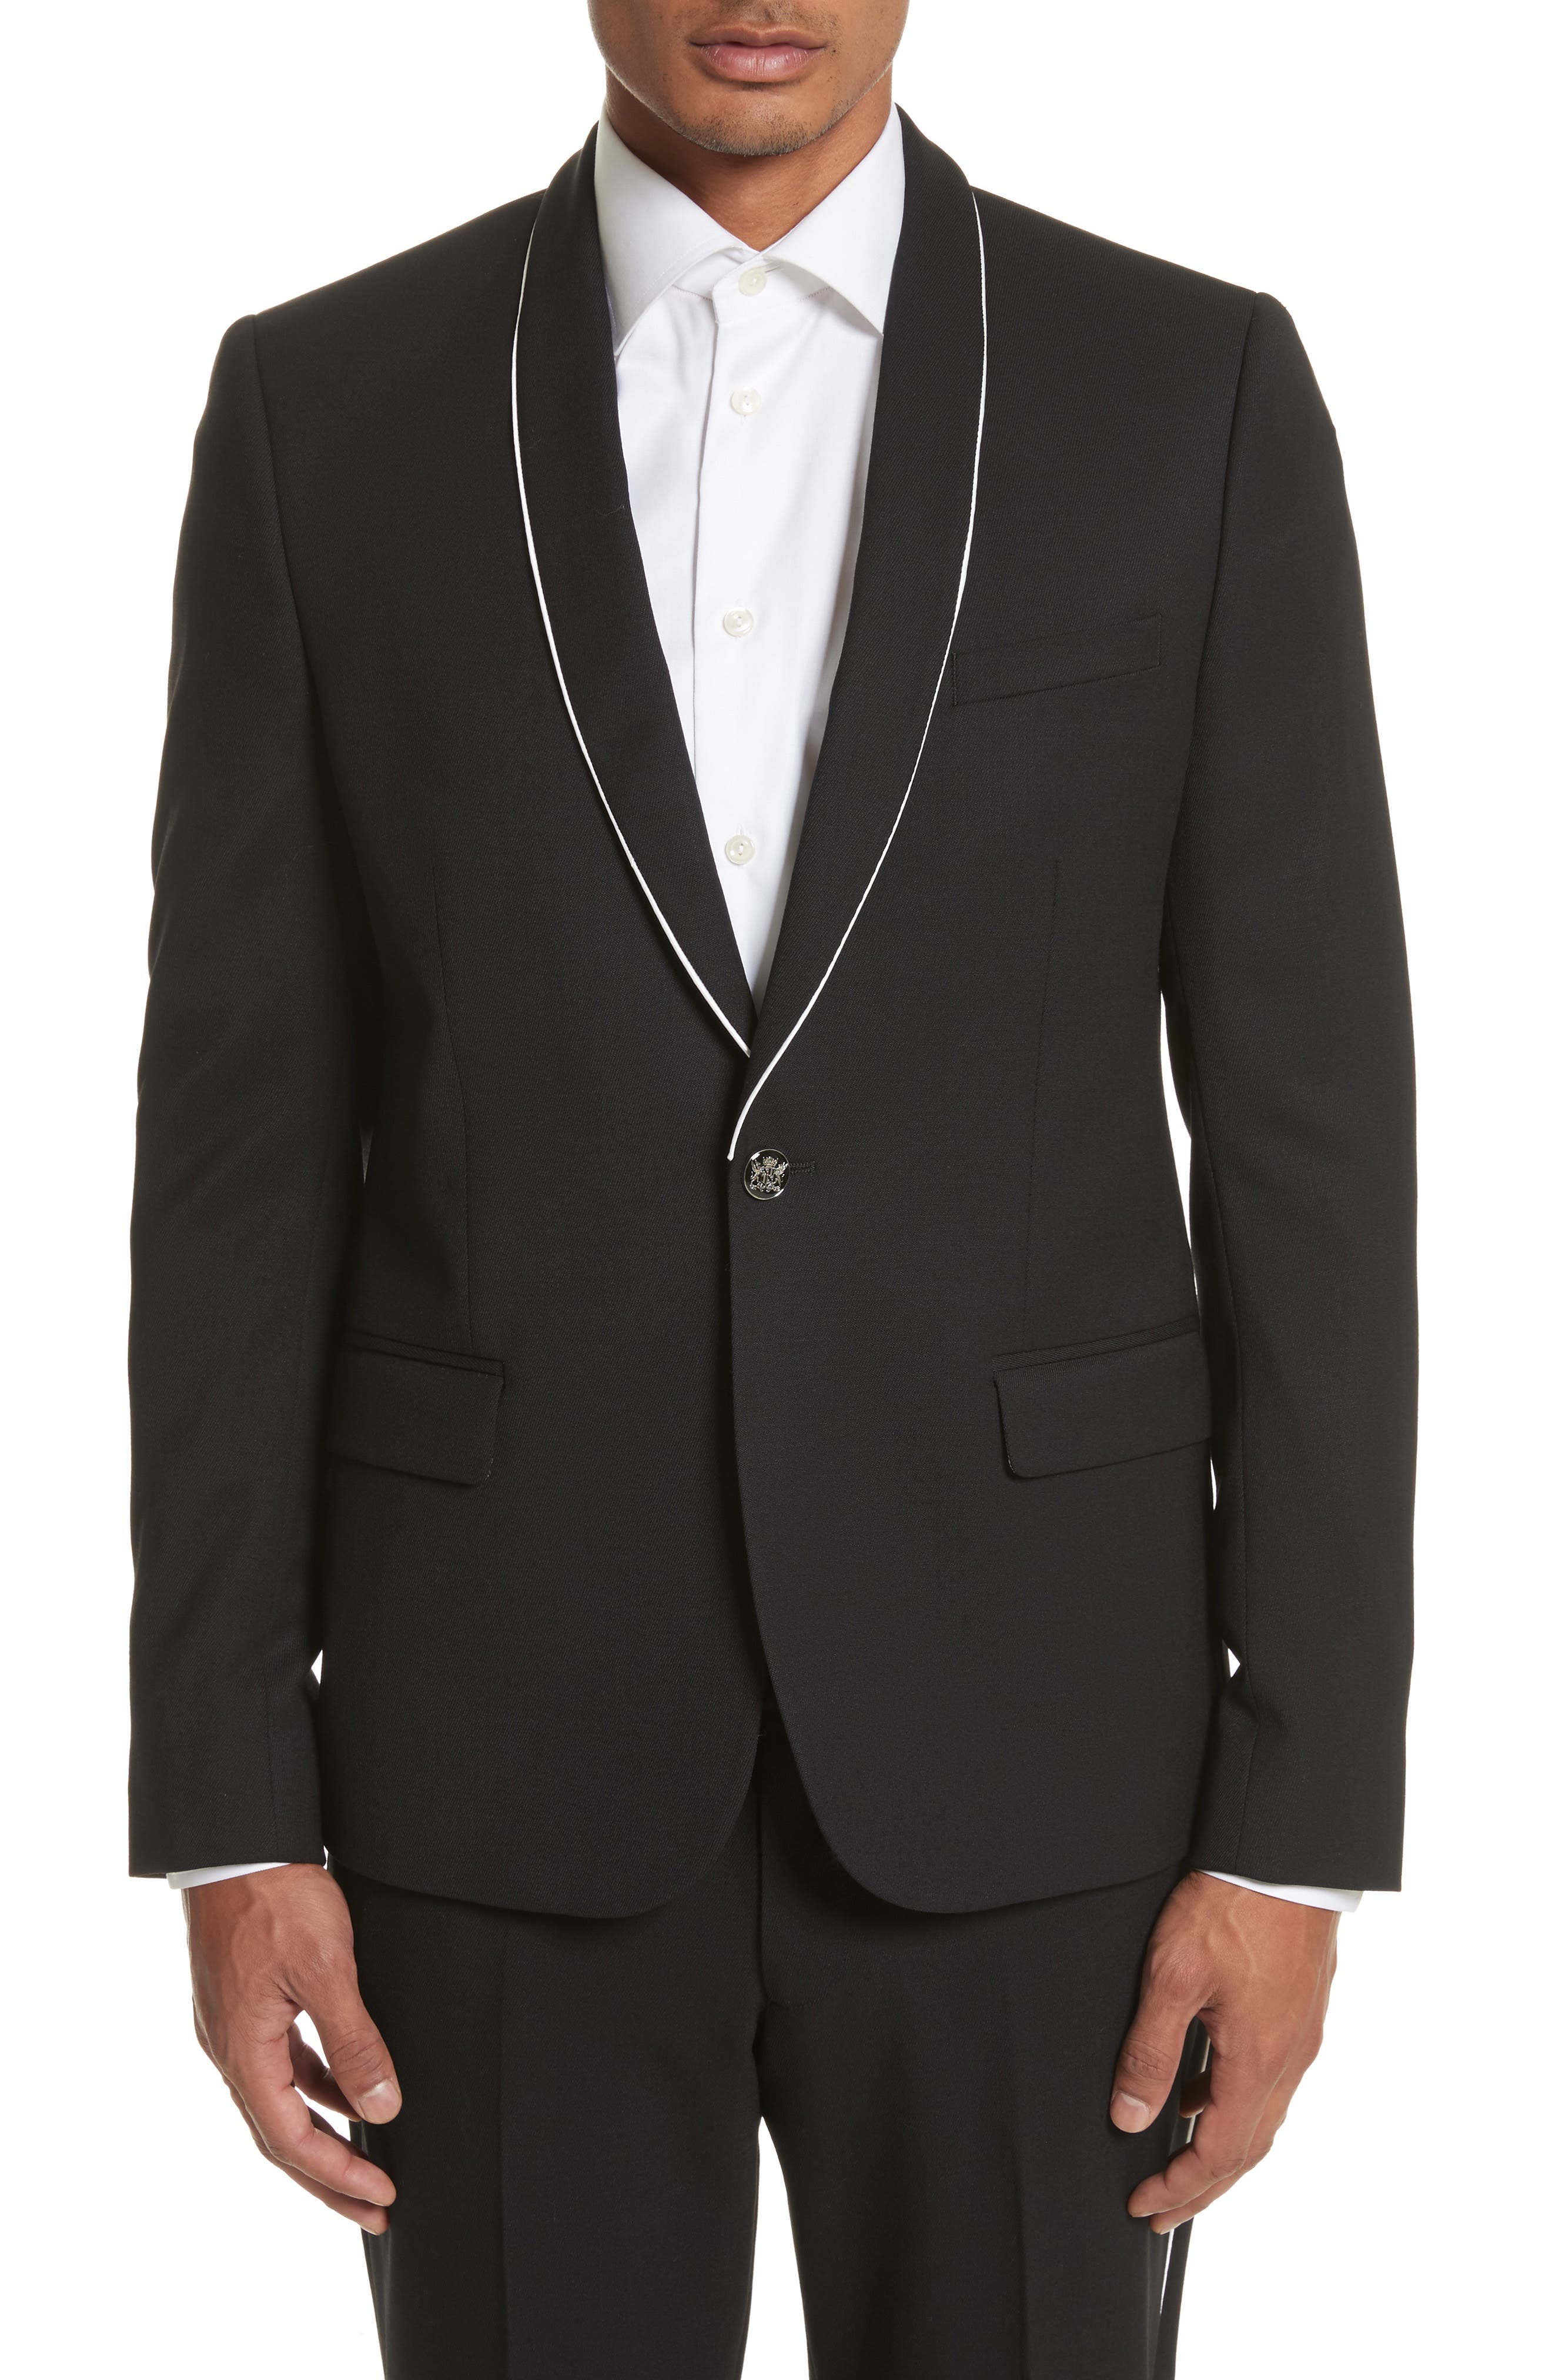 The Kooples Piped Suit Jacket